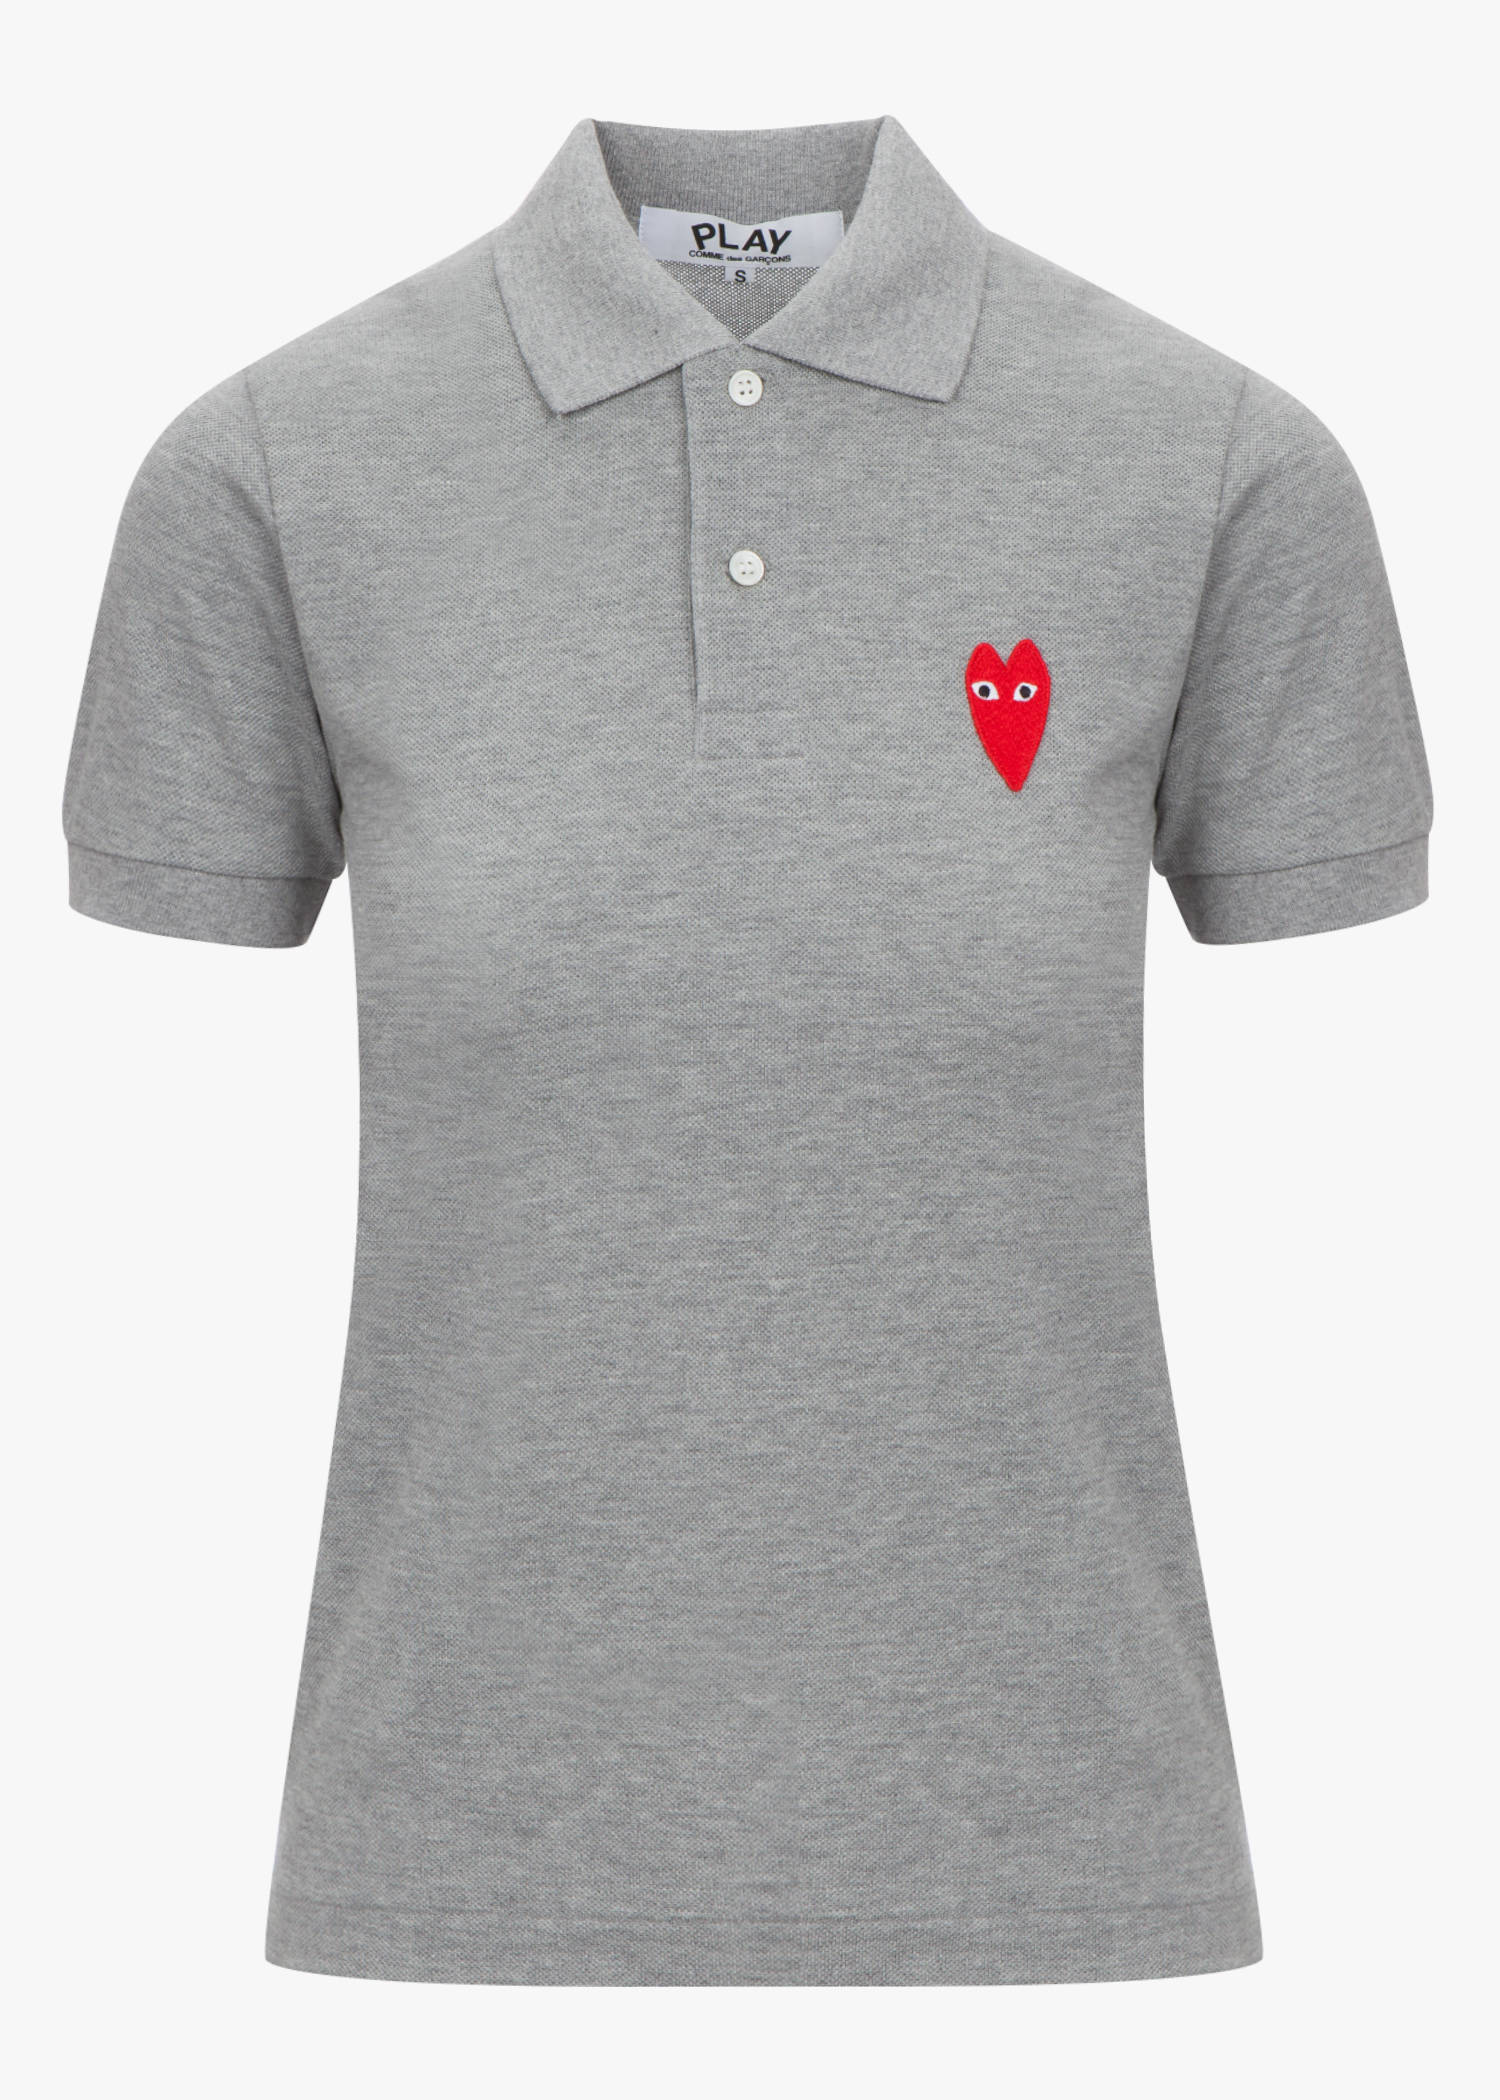 Comme Des GarÇOns Play Narrow Red Heart Patch Polo Shirt In Grey